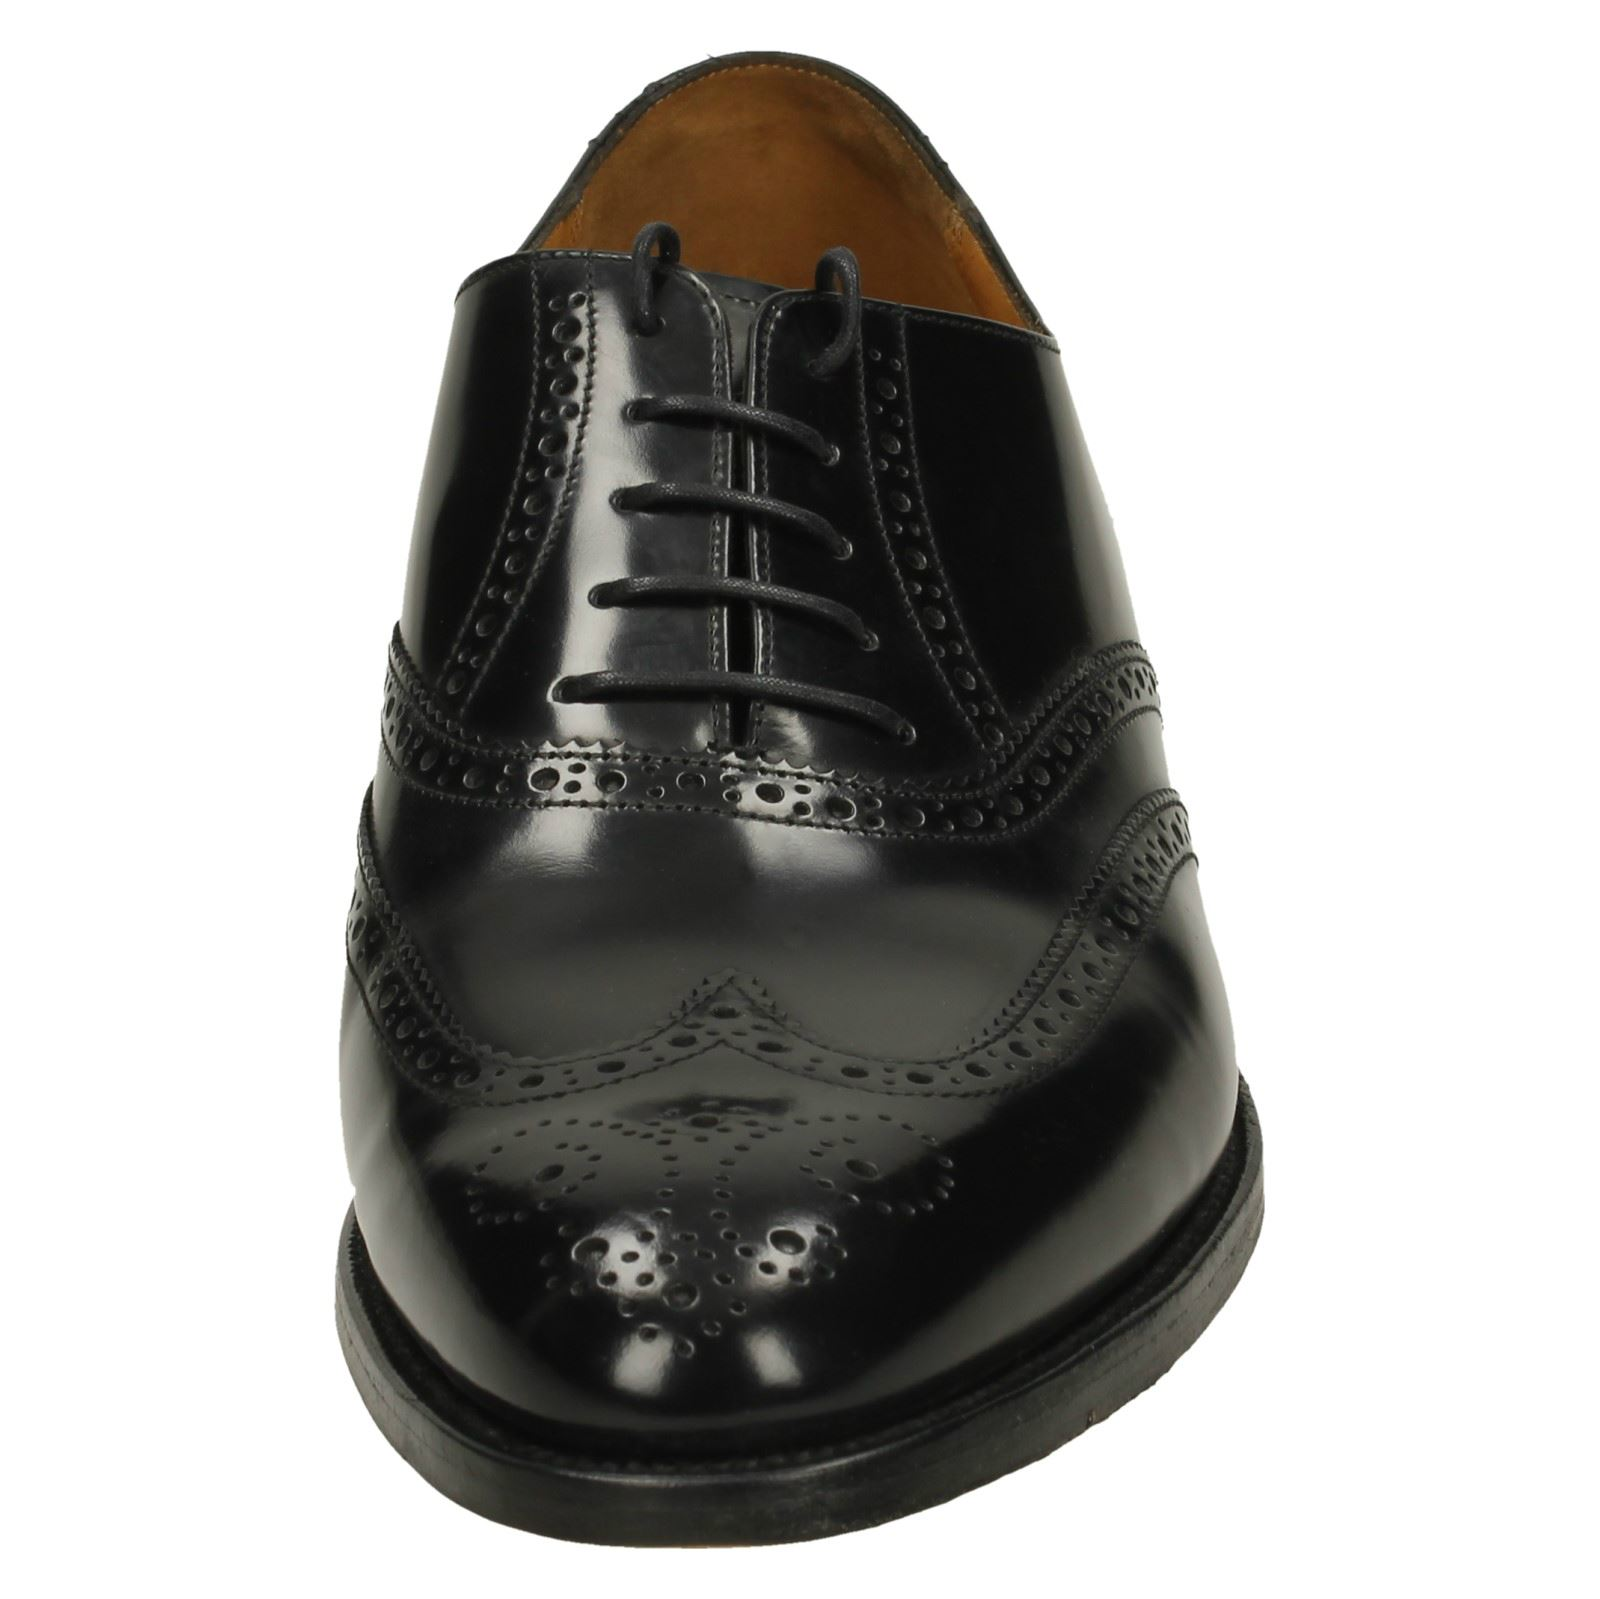 Barker Mens Brogue Style Shoes - Albert